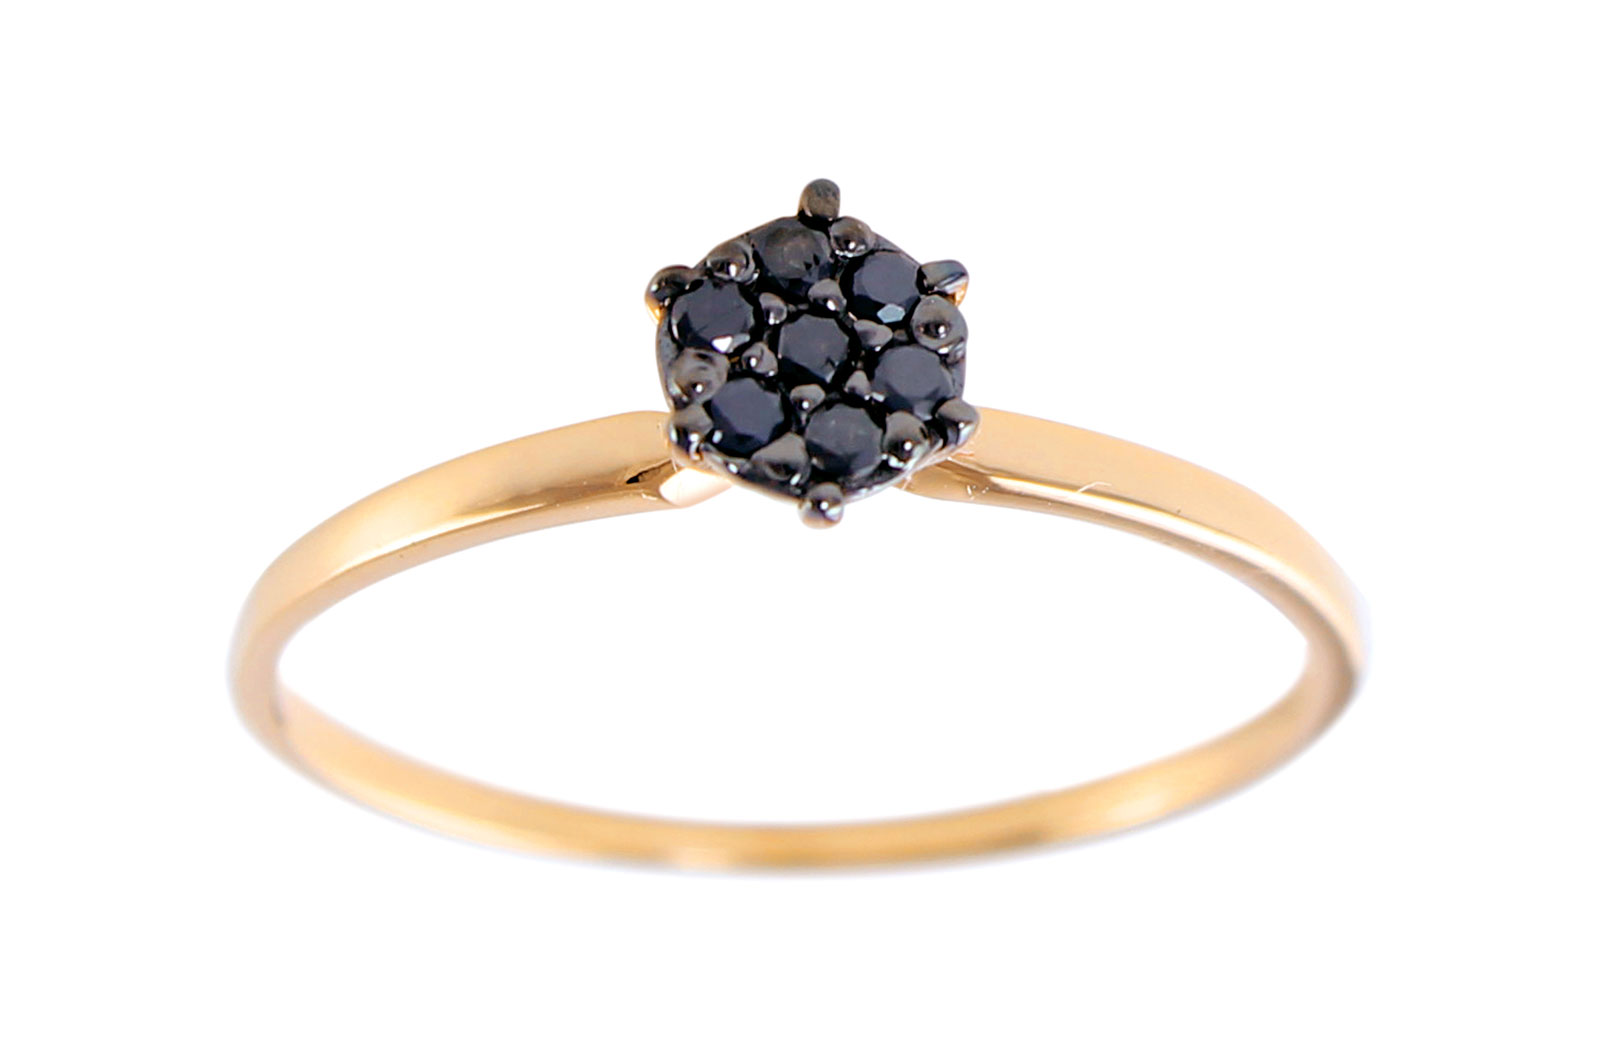 Vera Perla 18K Solid Black and Rose Gold 0.07Cts Genuine Diamonds  Solitaire Ring -Size 6.5 US